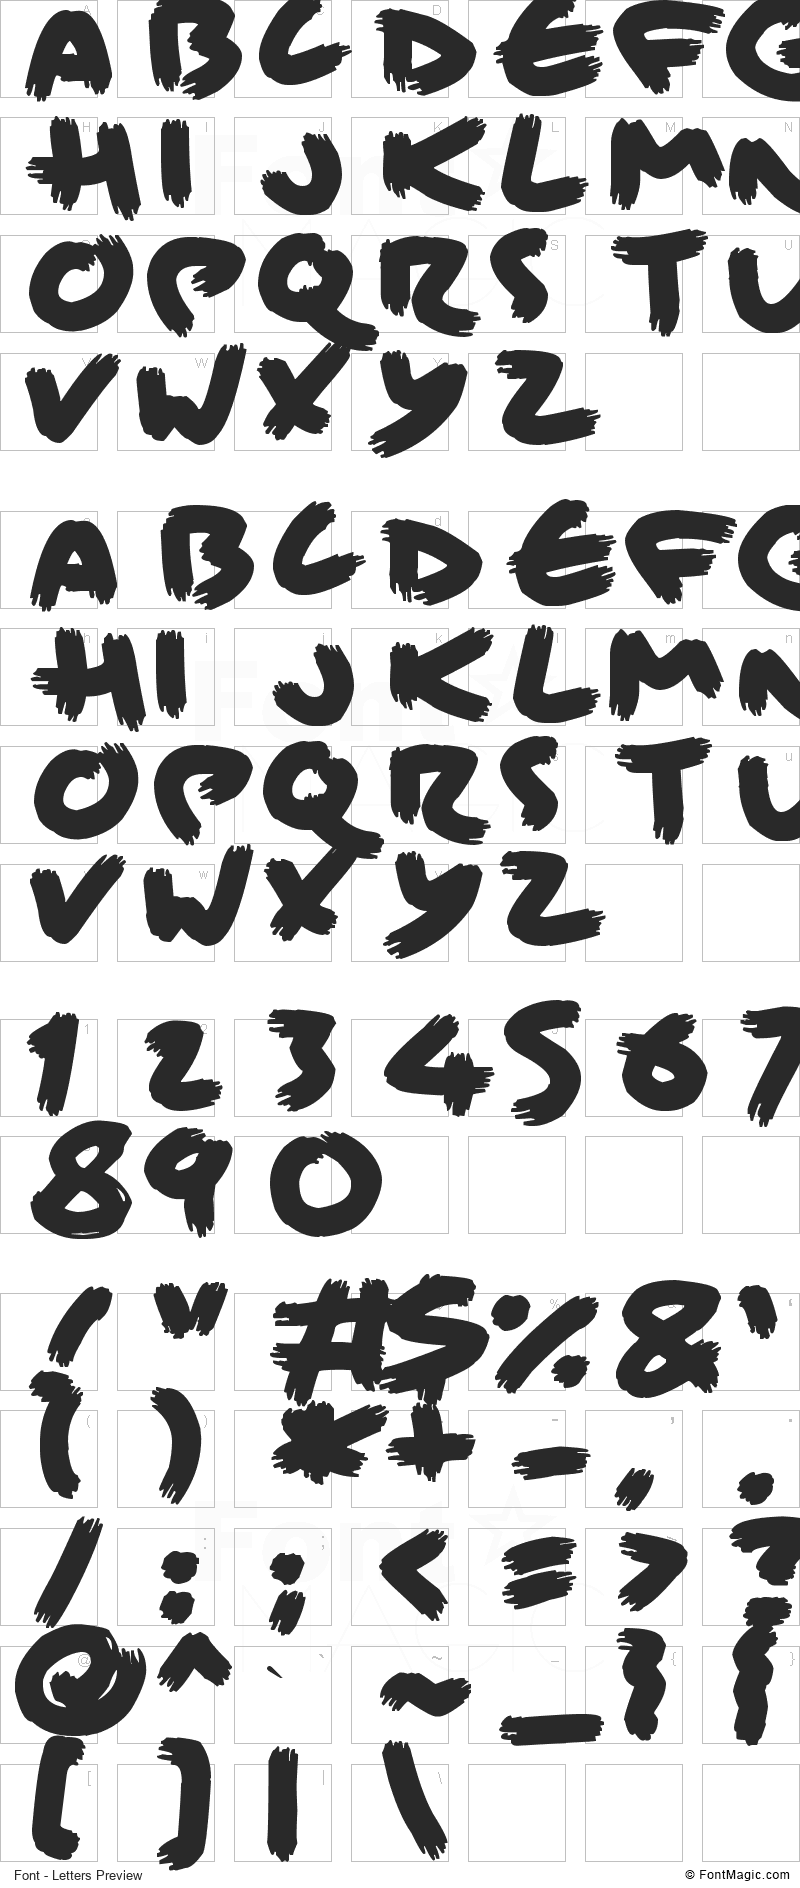 Brisk Bristle Brush Font - All Latters Preview Chart